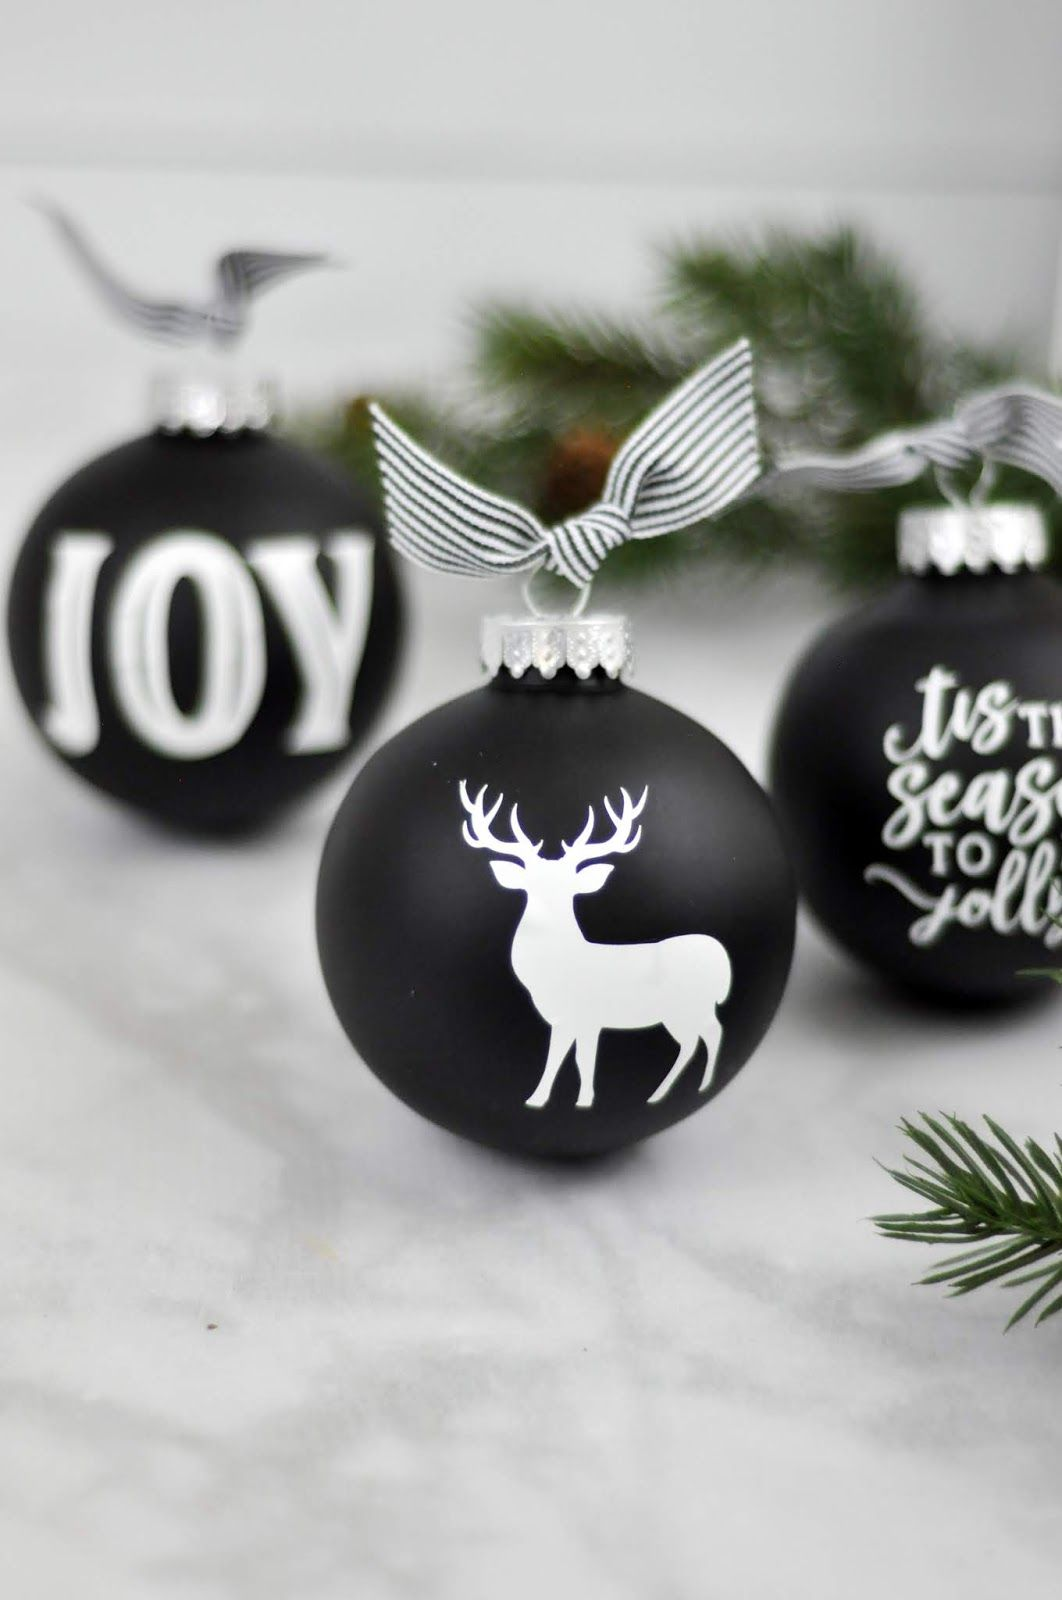 How To Add Vinyl To Christmas Ornaments Christmas Ornaments Chalkboard Ornament Christmas Vinyl